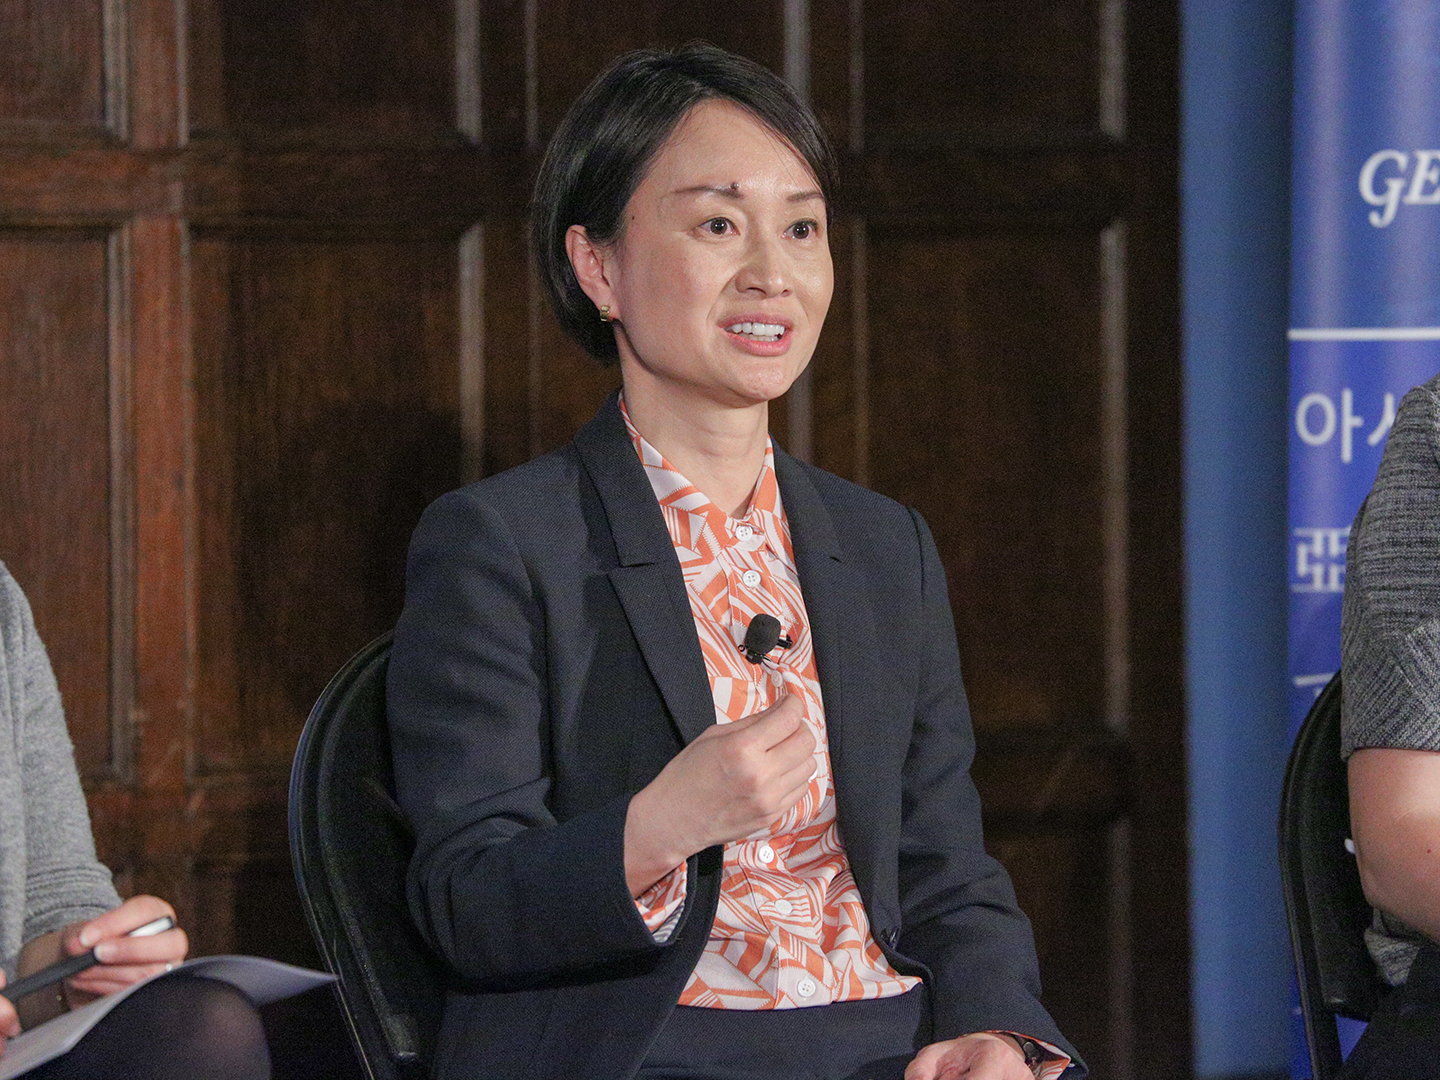 Jennifer Huang Bouey compares Chinas response to COVID-19 to the SARS outbreak in 2003.